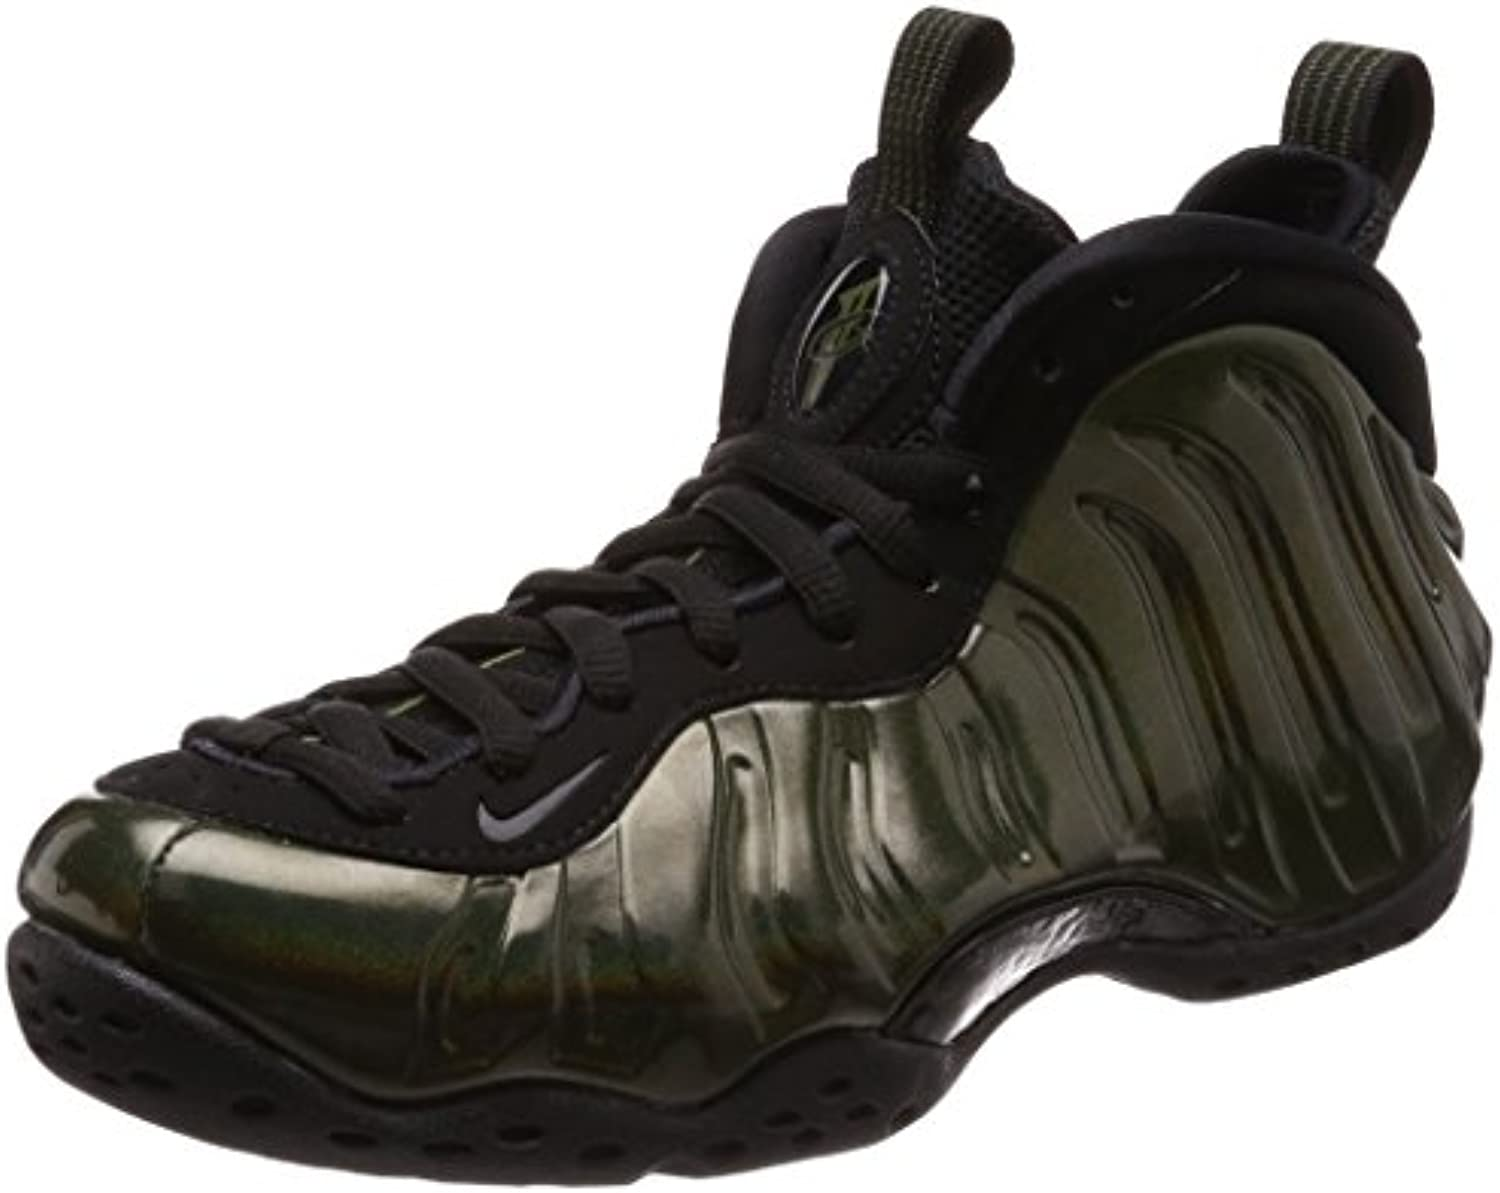 Nike Air Foamposite One   314996 301